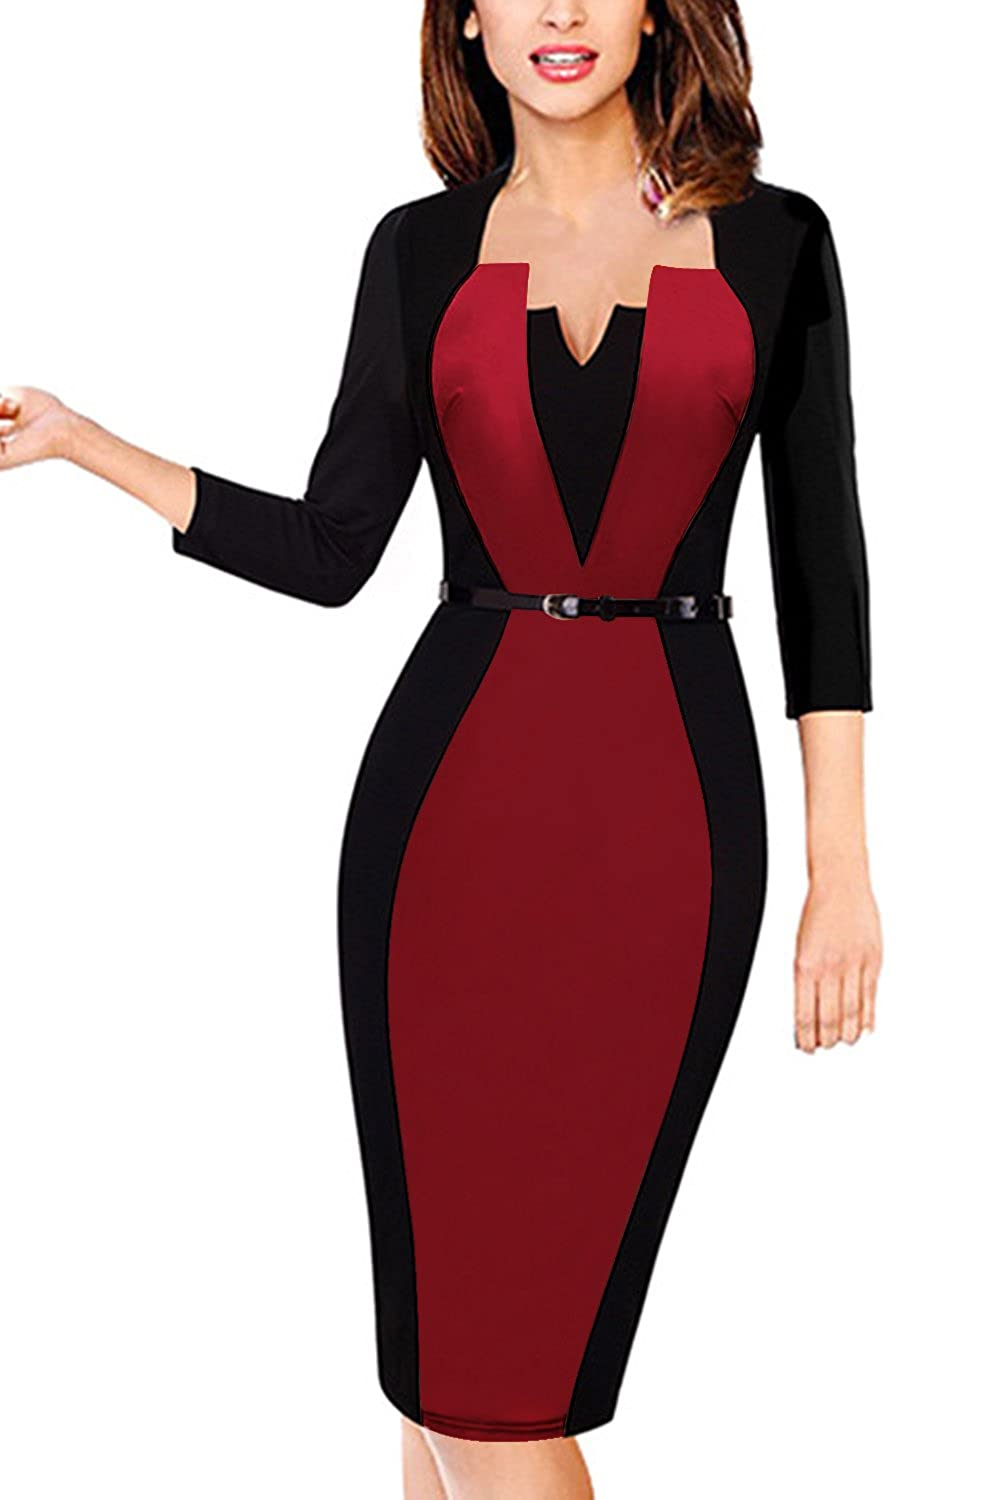 MisShow Women's Colorblock 3/4 Sleeve Wear to Work Business Bodycon One-Piece Dress